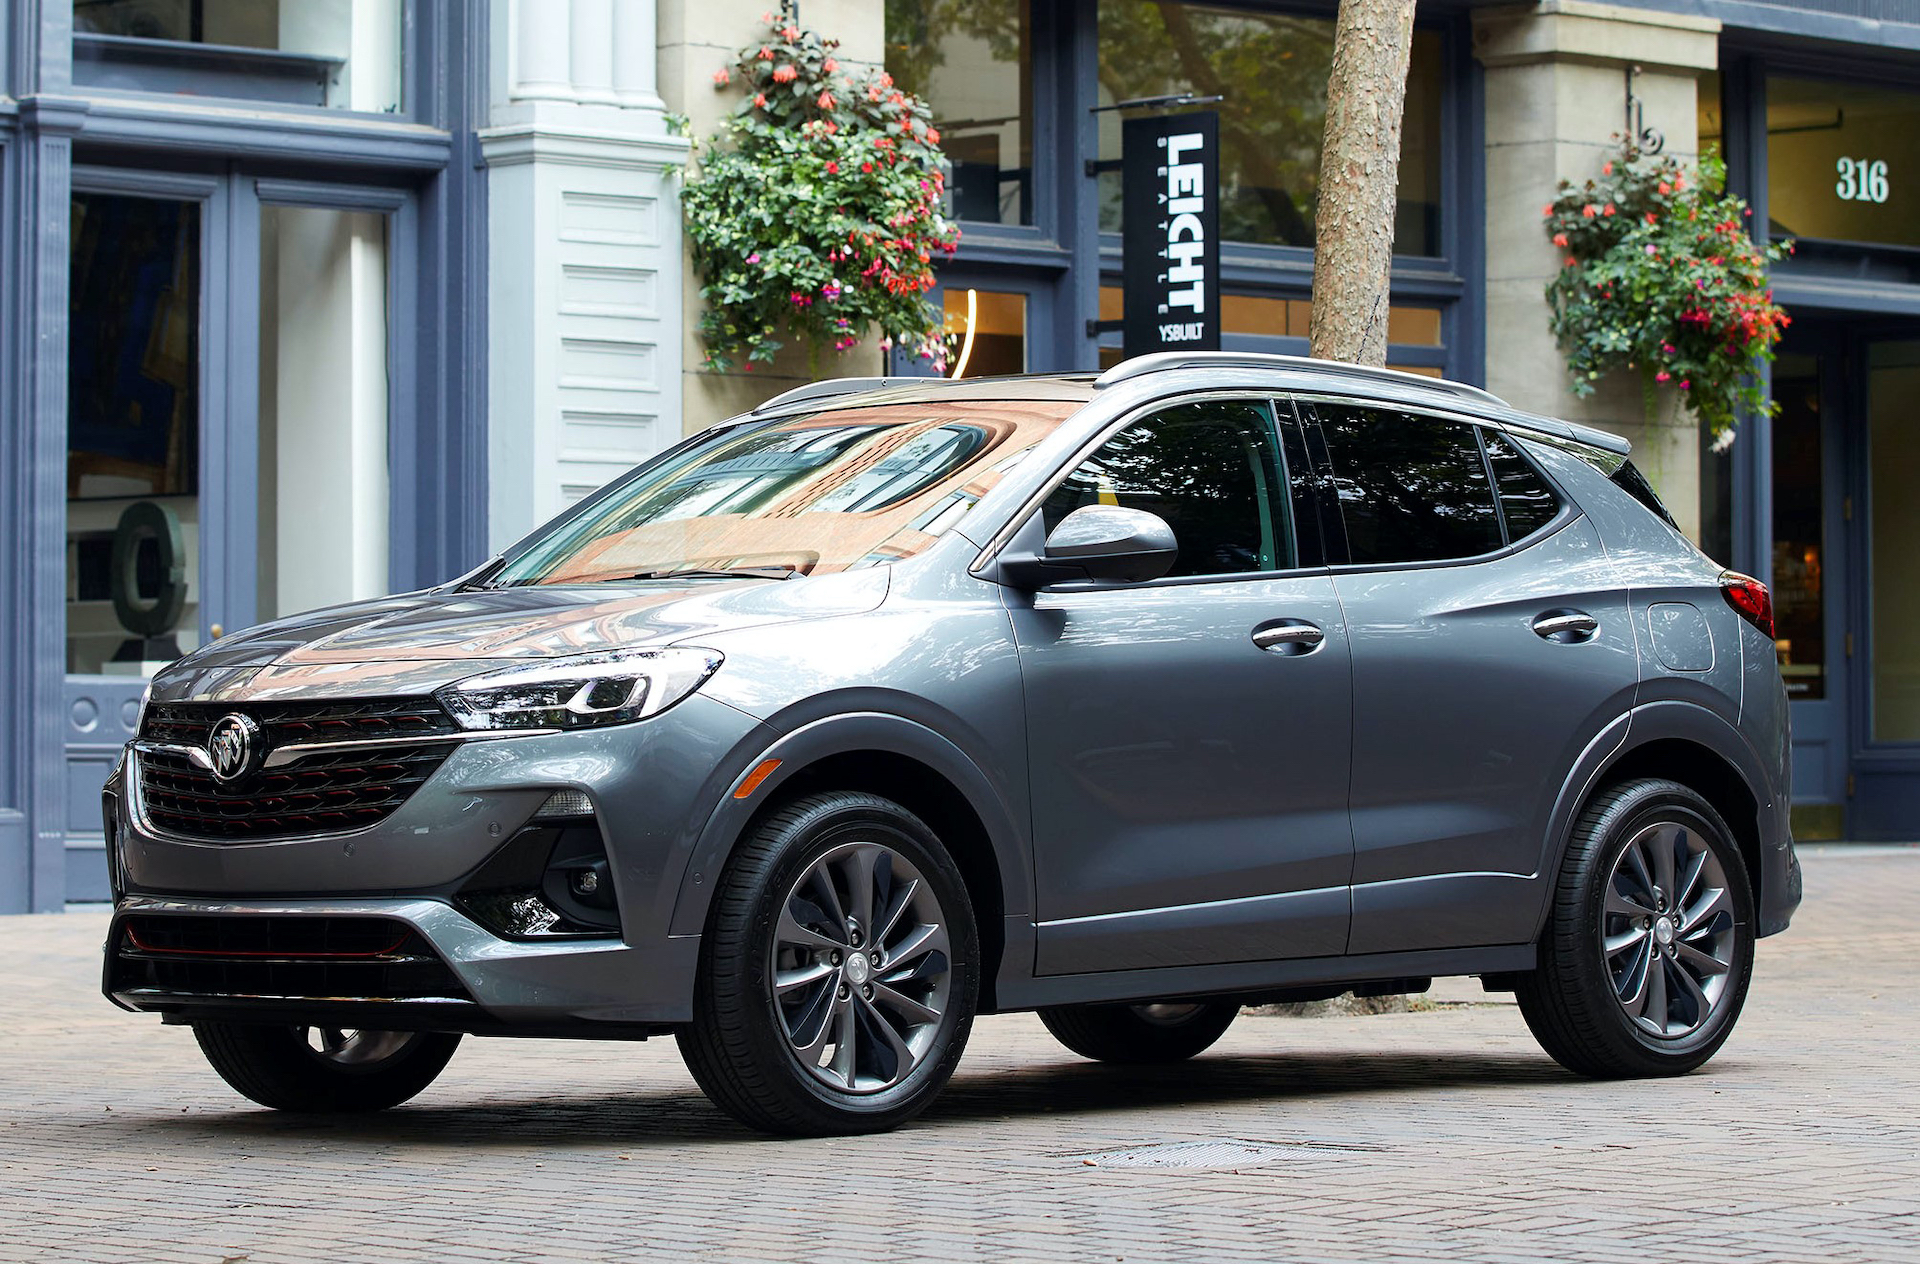 2021 Buick Encore Review, Ratings, Specs, Prices, And Photos 2021 Buick Encore Gx Review, Dimensions, Price